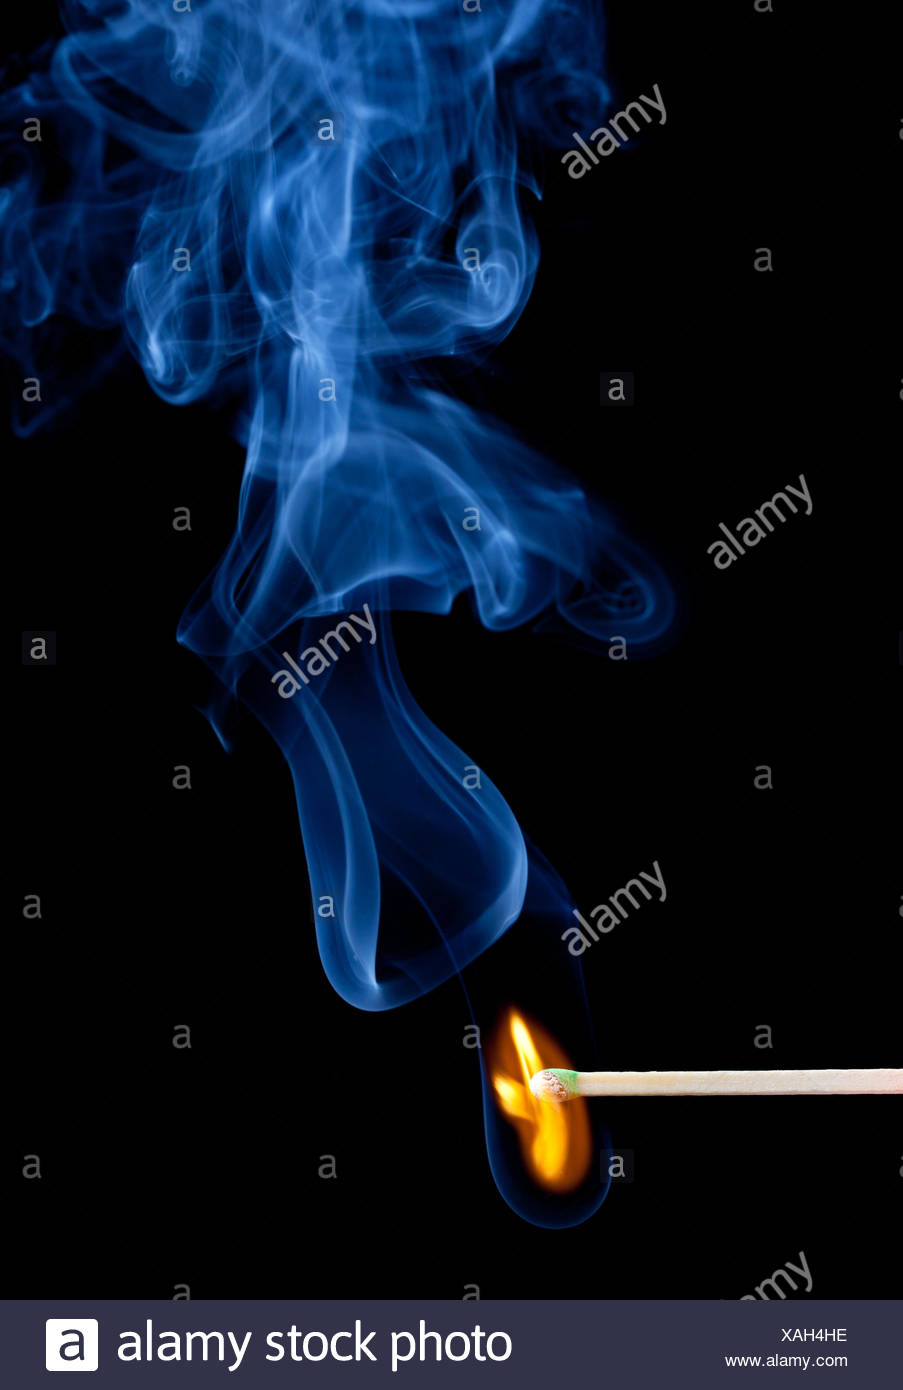 Green headed match starts to smoulder - Stock Image